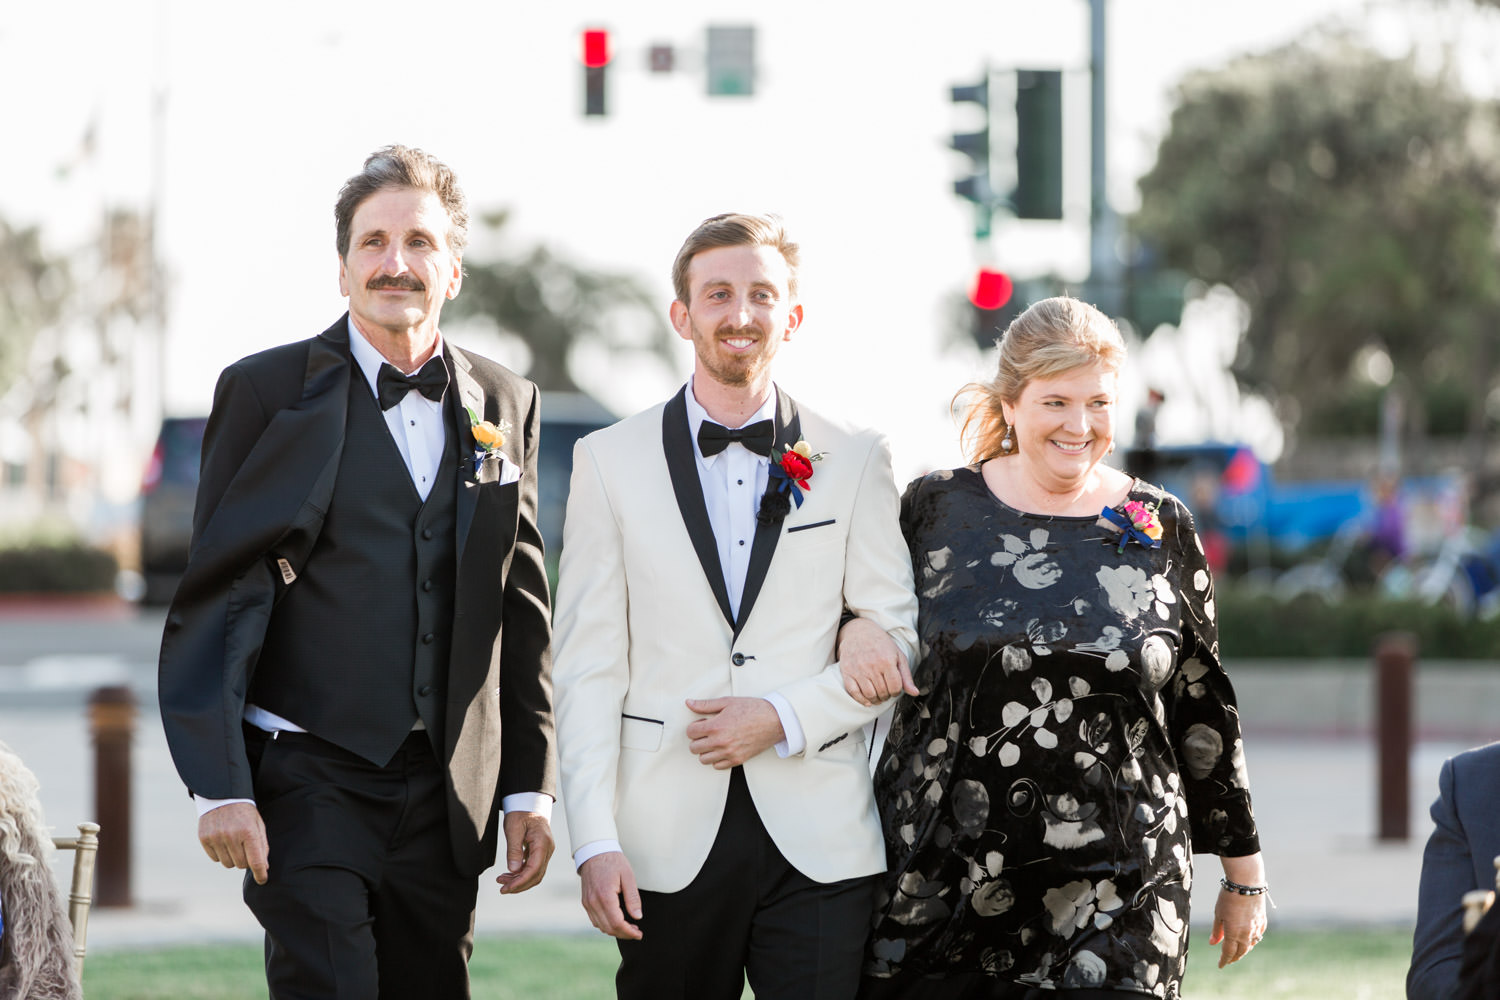 Groom and parents walking down the aisle for a Coronado Community Center Wedding Ceremony, Cavin Elizabeth Photography